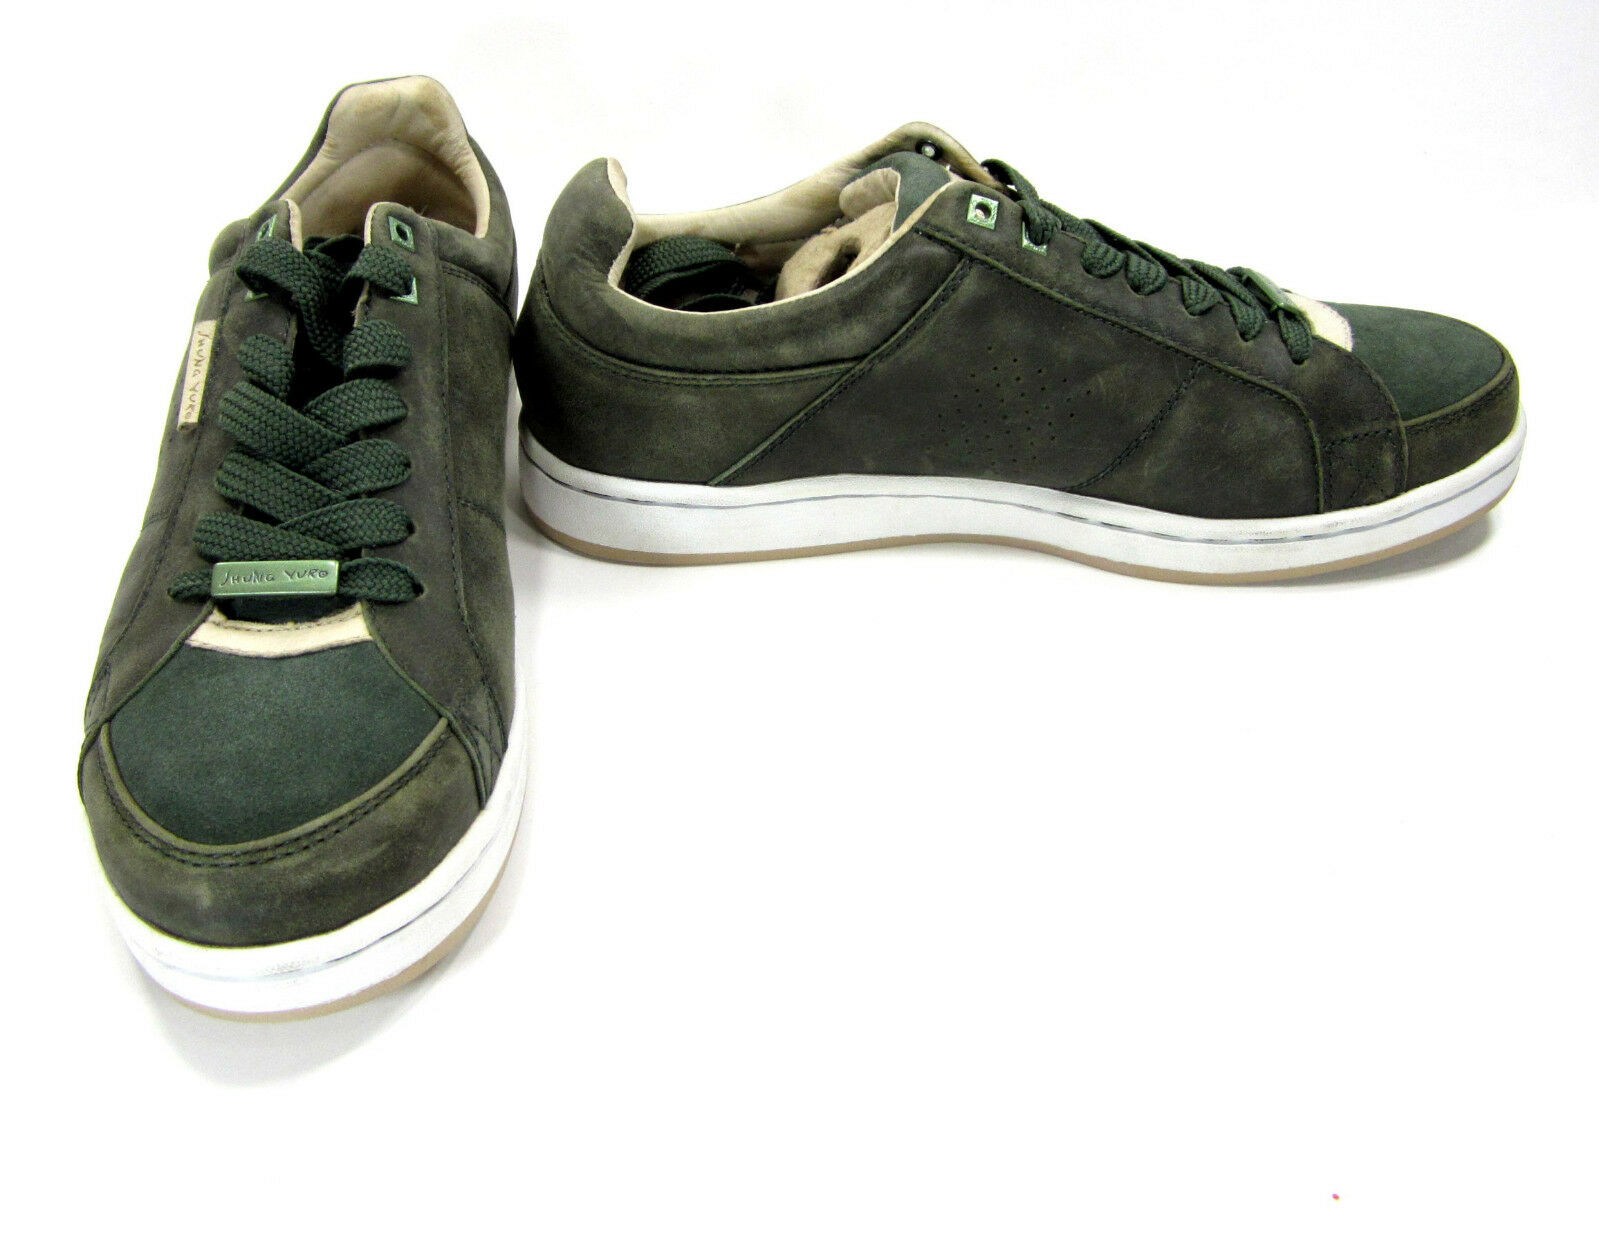 Jhung Yuro Chaussures Exotic Suede Lo Casual Dark Vert/Doré Sneakers